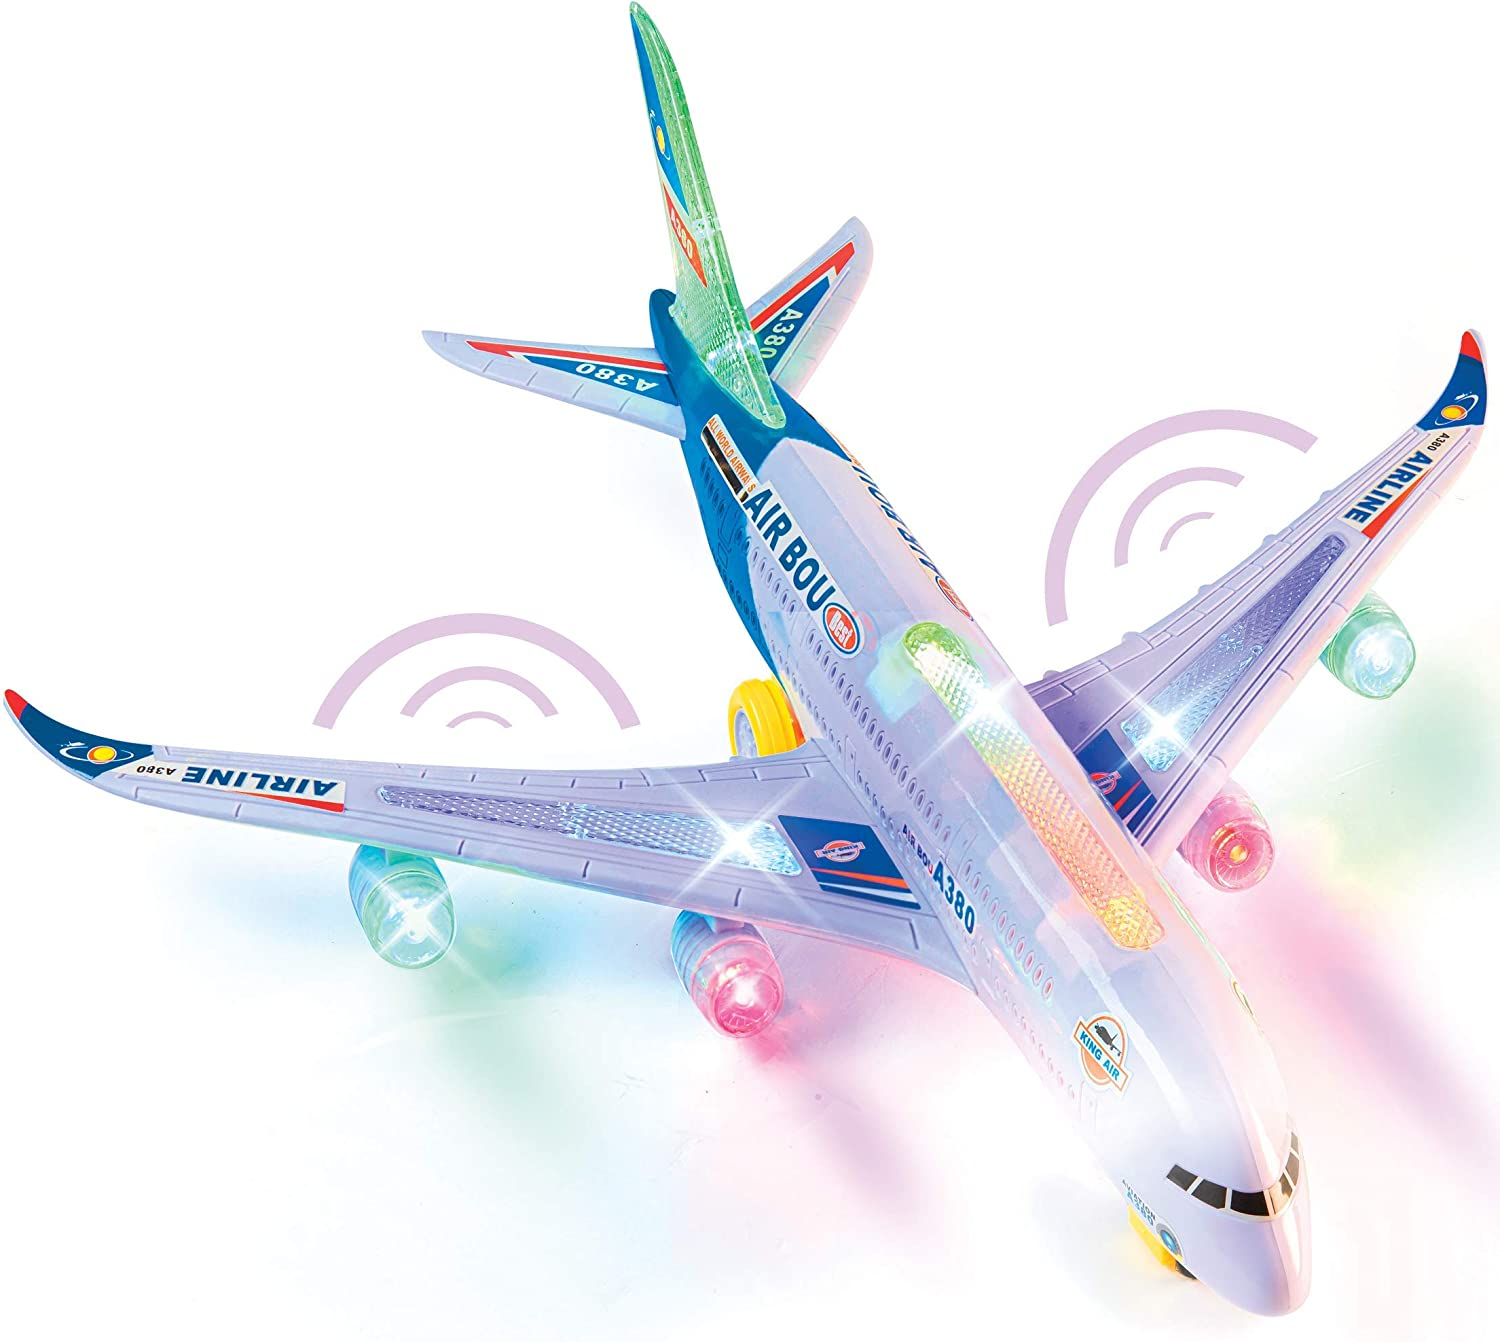 Amazon Com Top Race A380 Airplane Toys For 3 4 5 6 Years Old And Up Plane Toy Model With Lights And Music Bump And Go Airplane Toy For Boys And Girls Toys Games